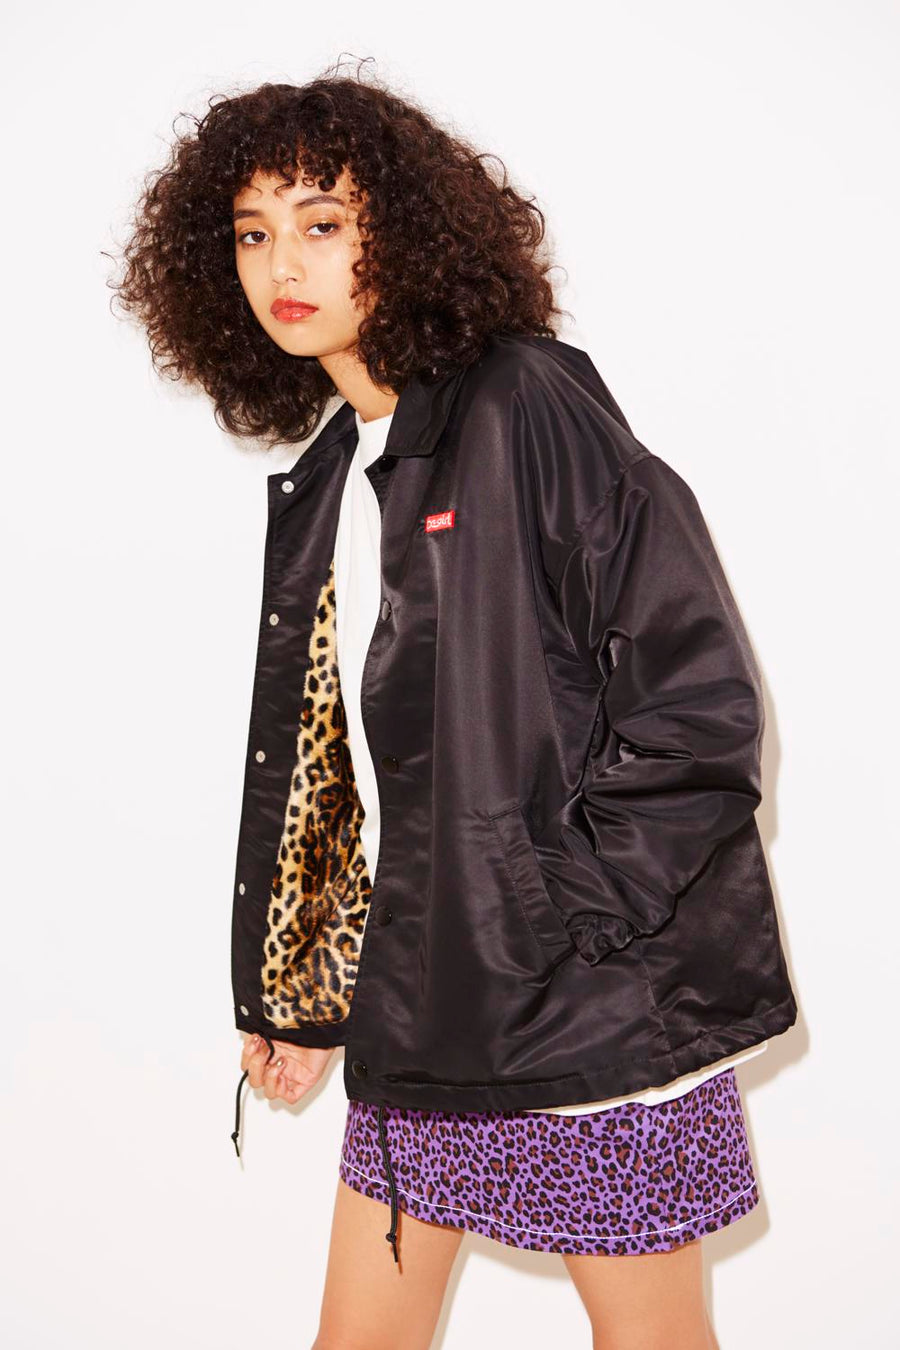 BOX LOGO COACH JACKET, JACKET, X-Girl